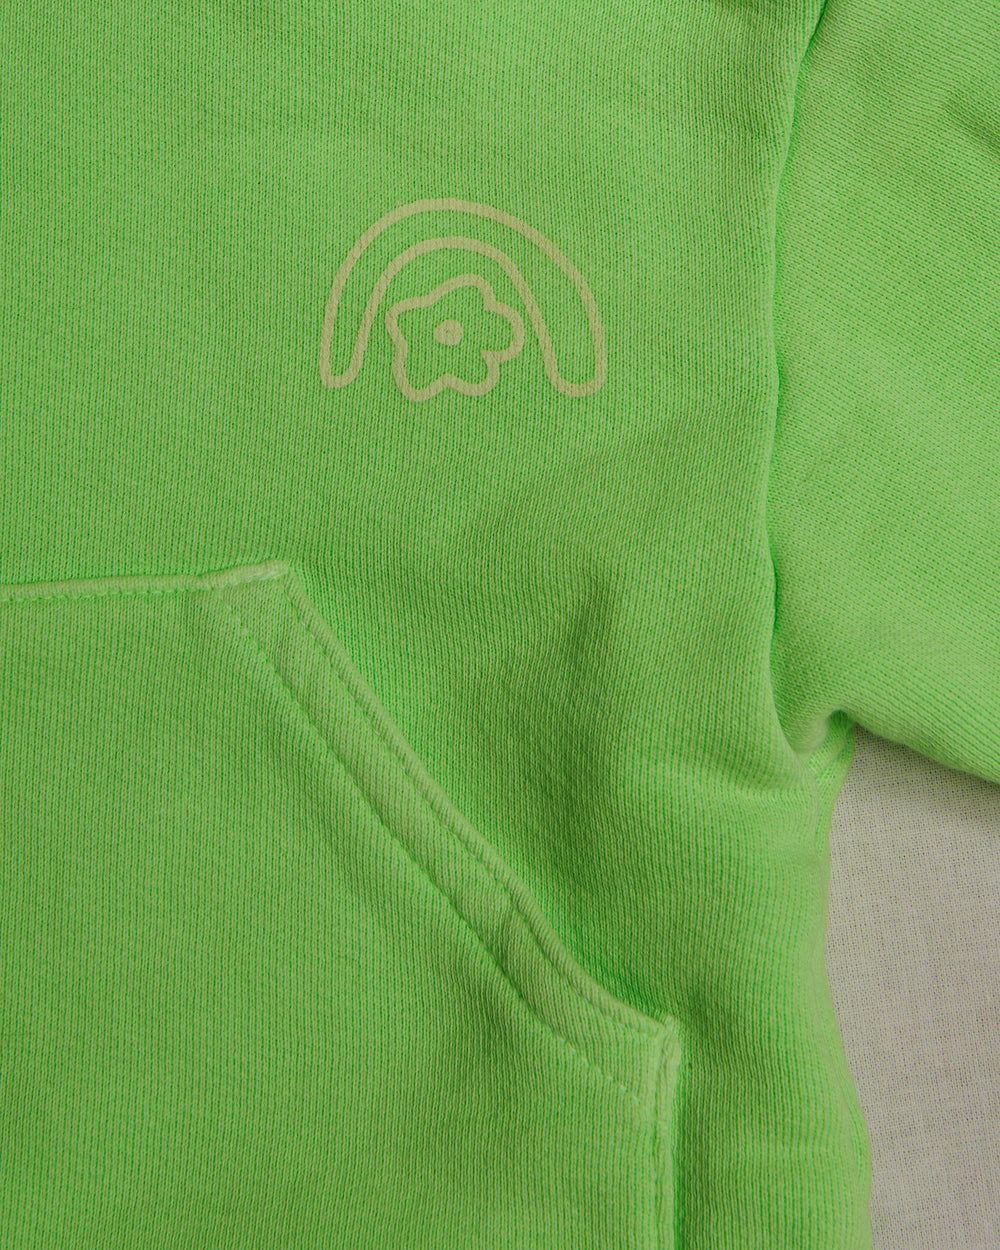 Sandy Liang x Two Bridges Neon Green Hoodie